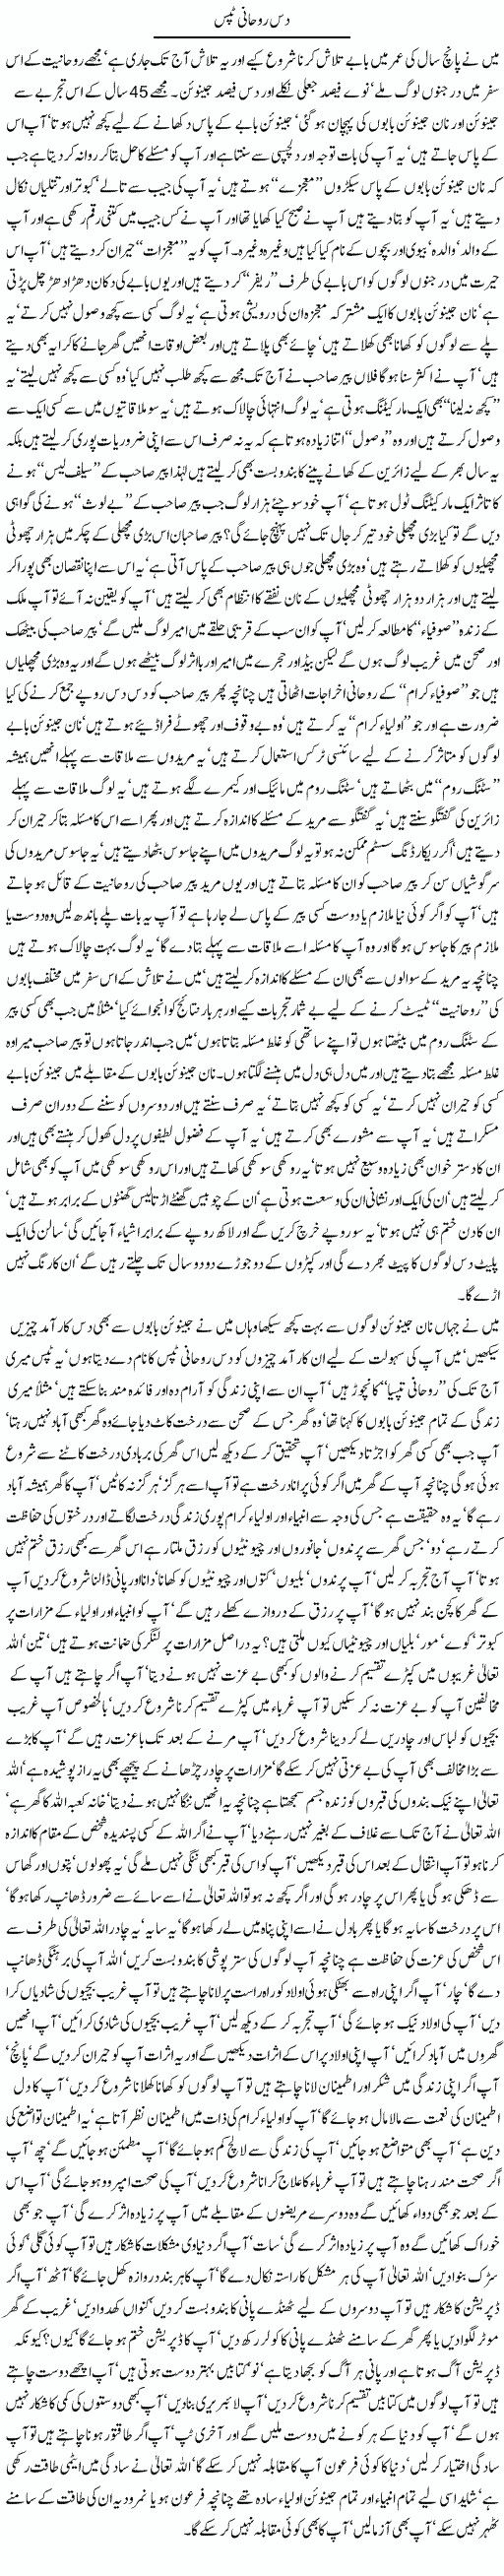 Pin by Ali on openion Daily news paper, Urdu news paper